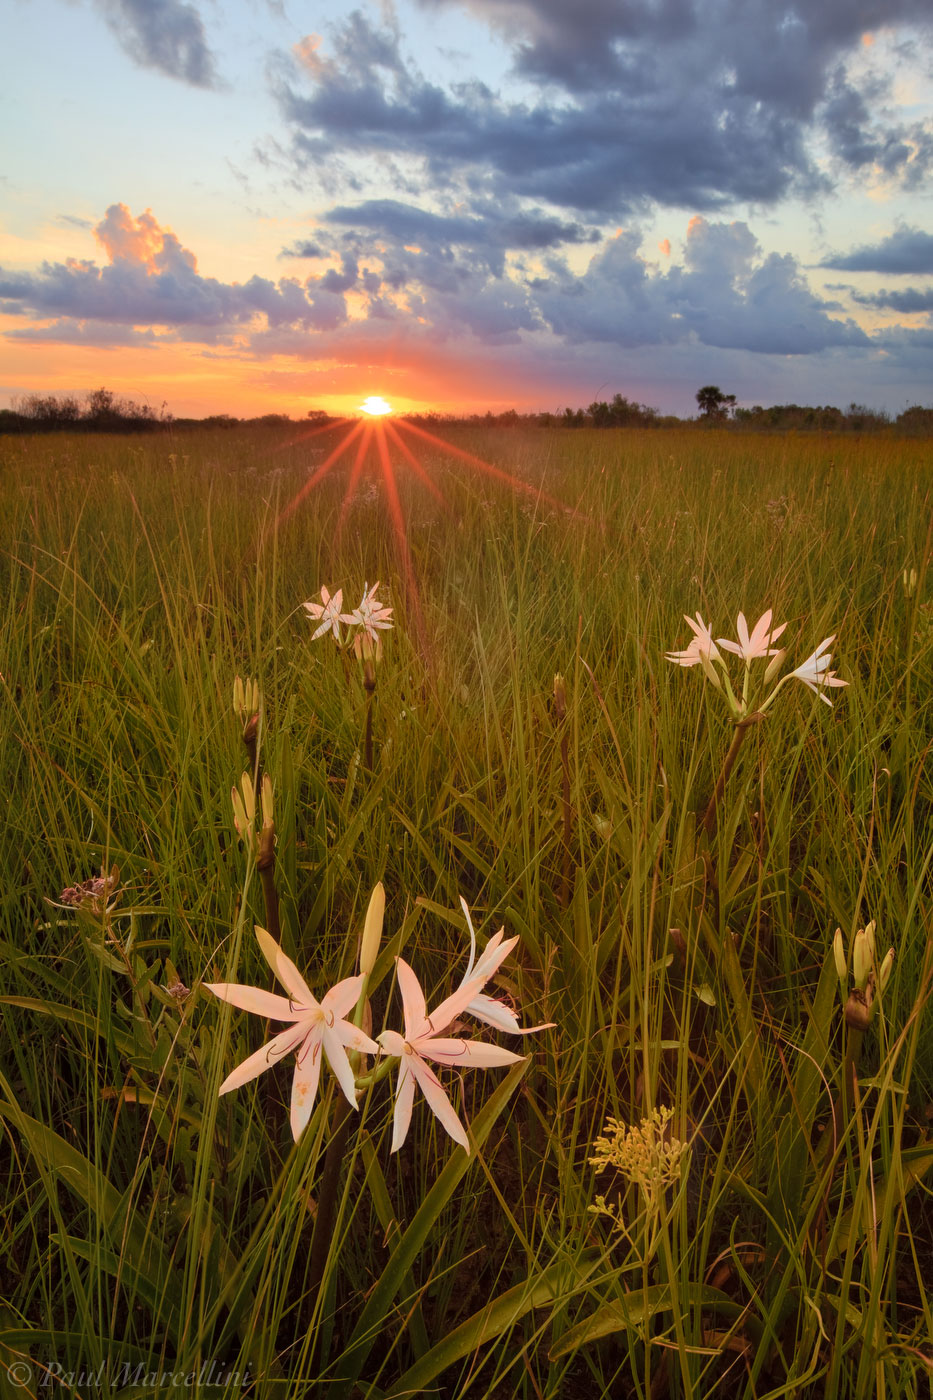 everglades, lilies, crinum americanum, Florida, nature, photography, florida national parks, photo